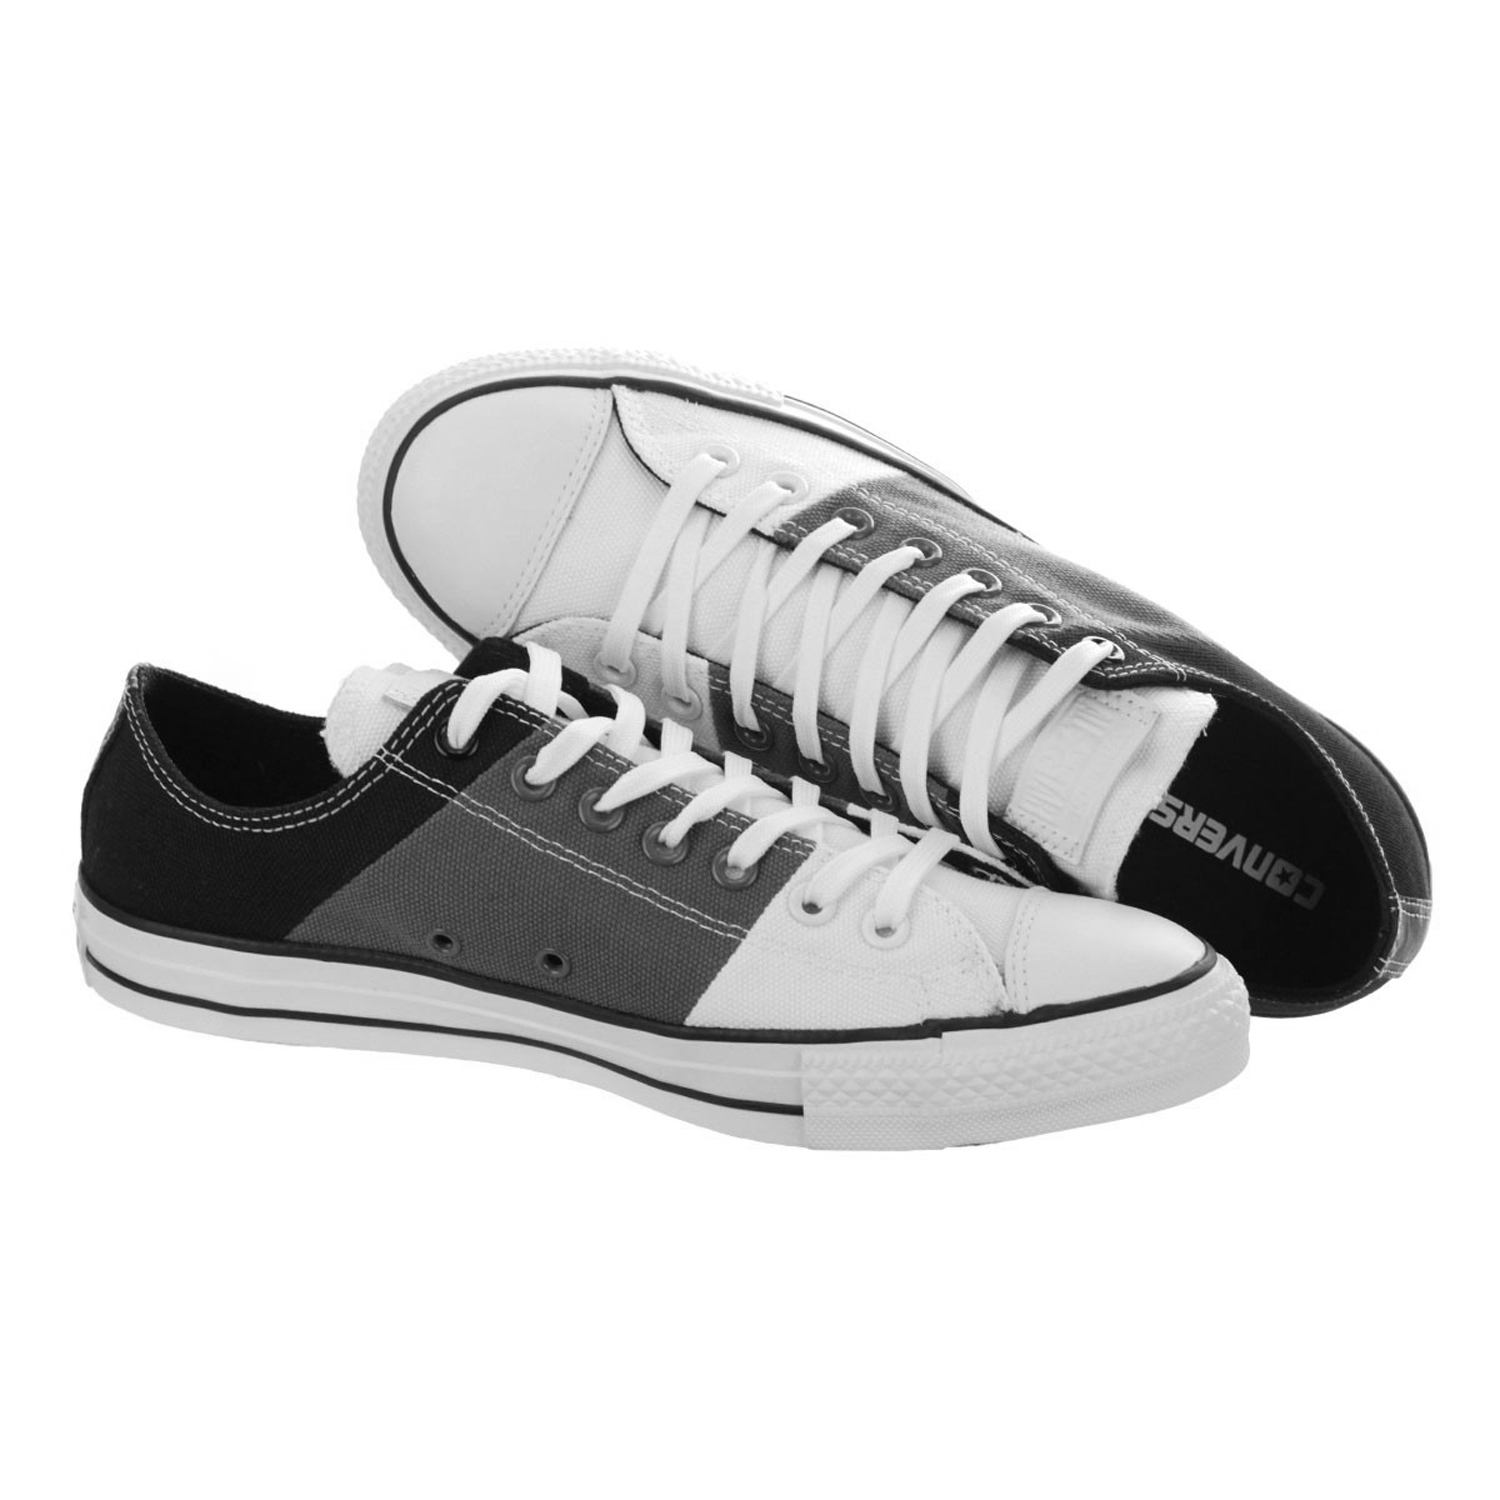 4819d793209 Converse Men s Chuck Taylor All Star Panel Ox White Charcoal Black Sneaker